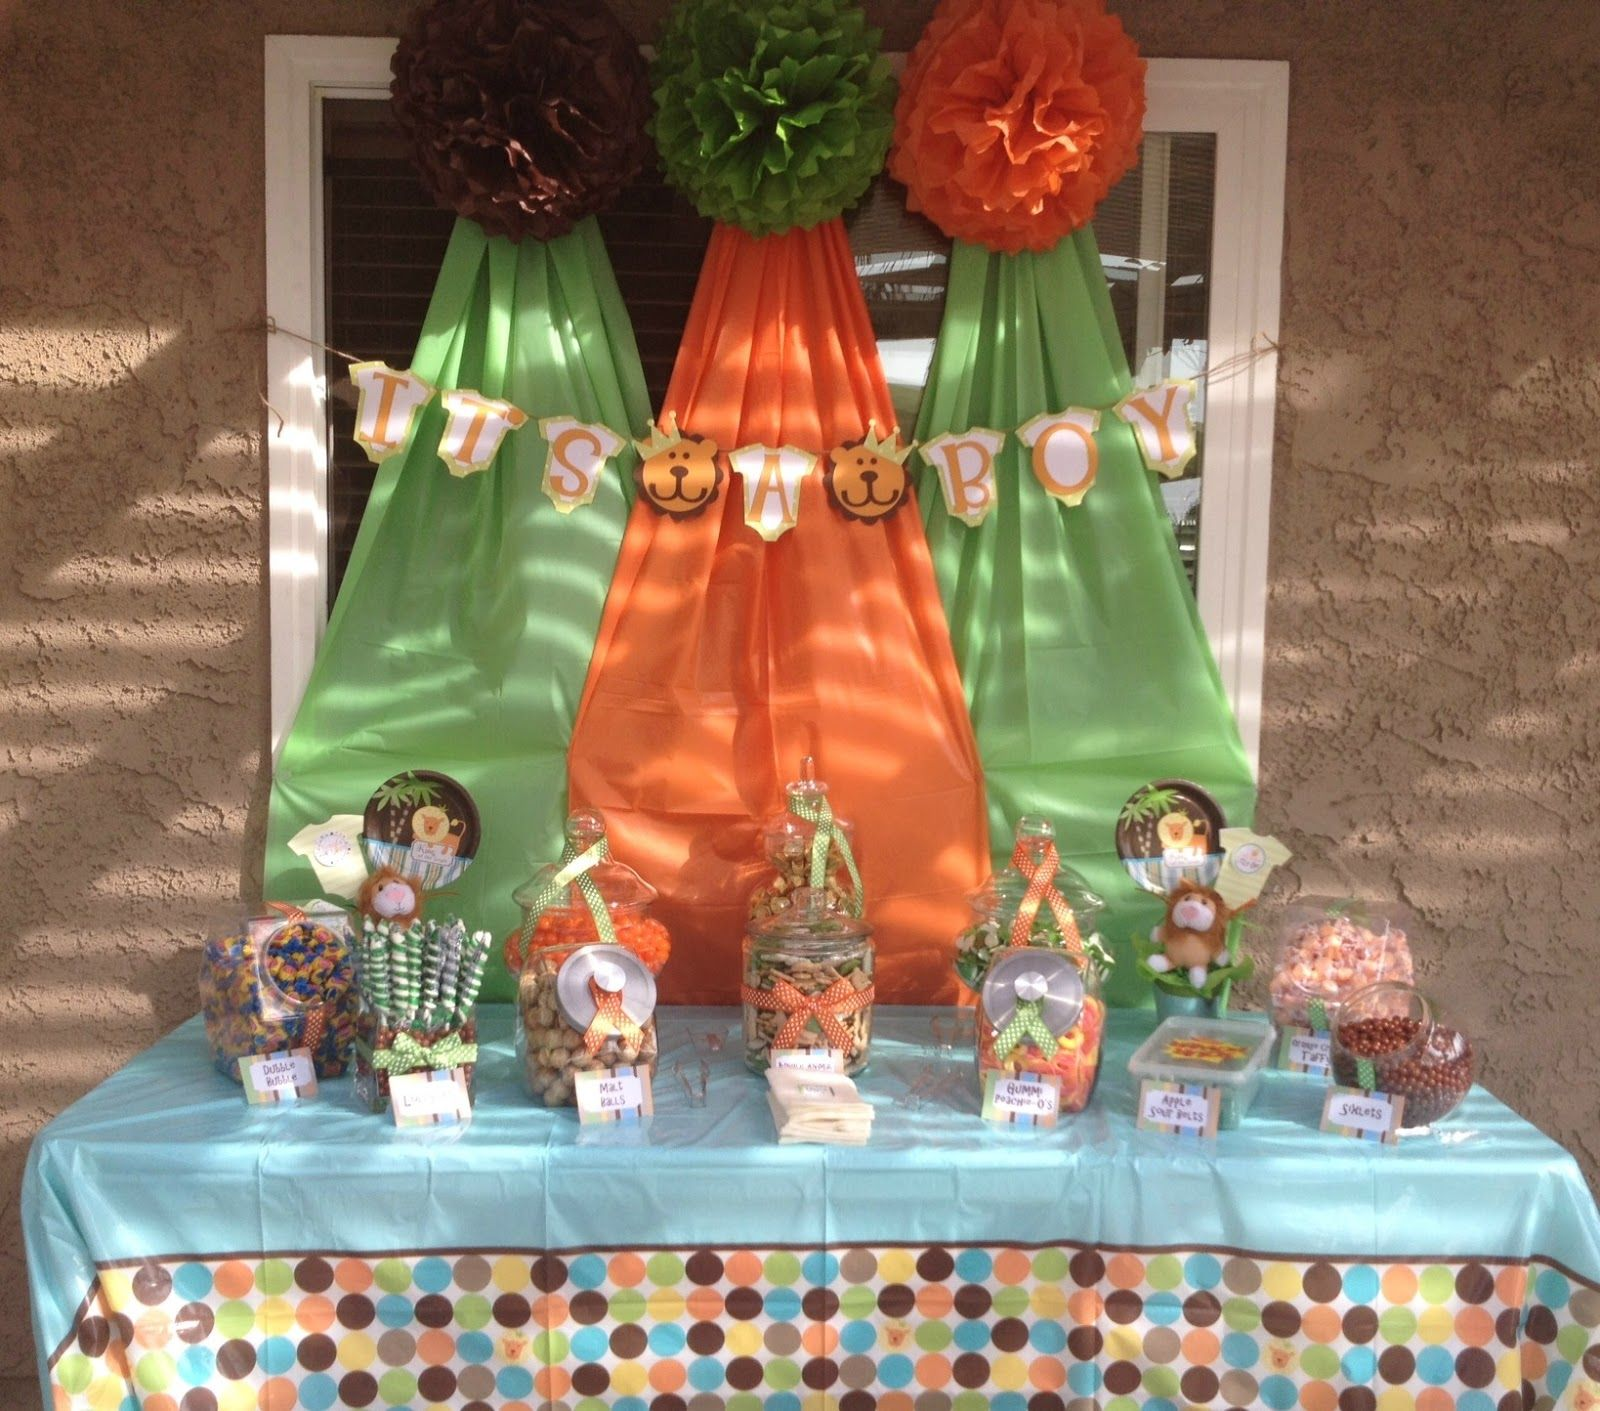 Elegant Baby Shower Ideas | The Simple Life: King of the Jungle Baby Shower